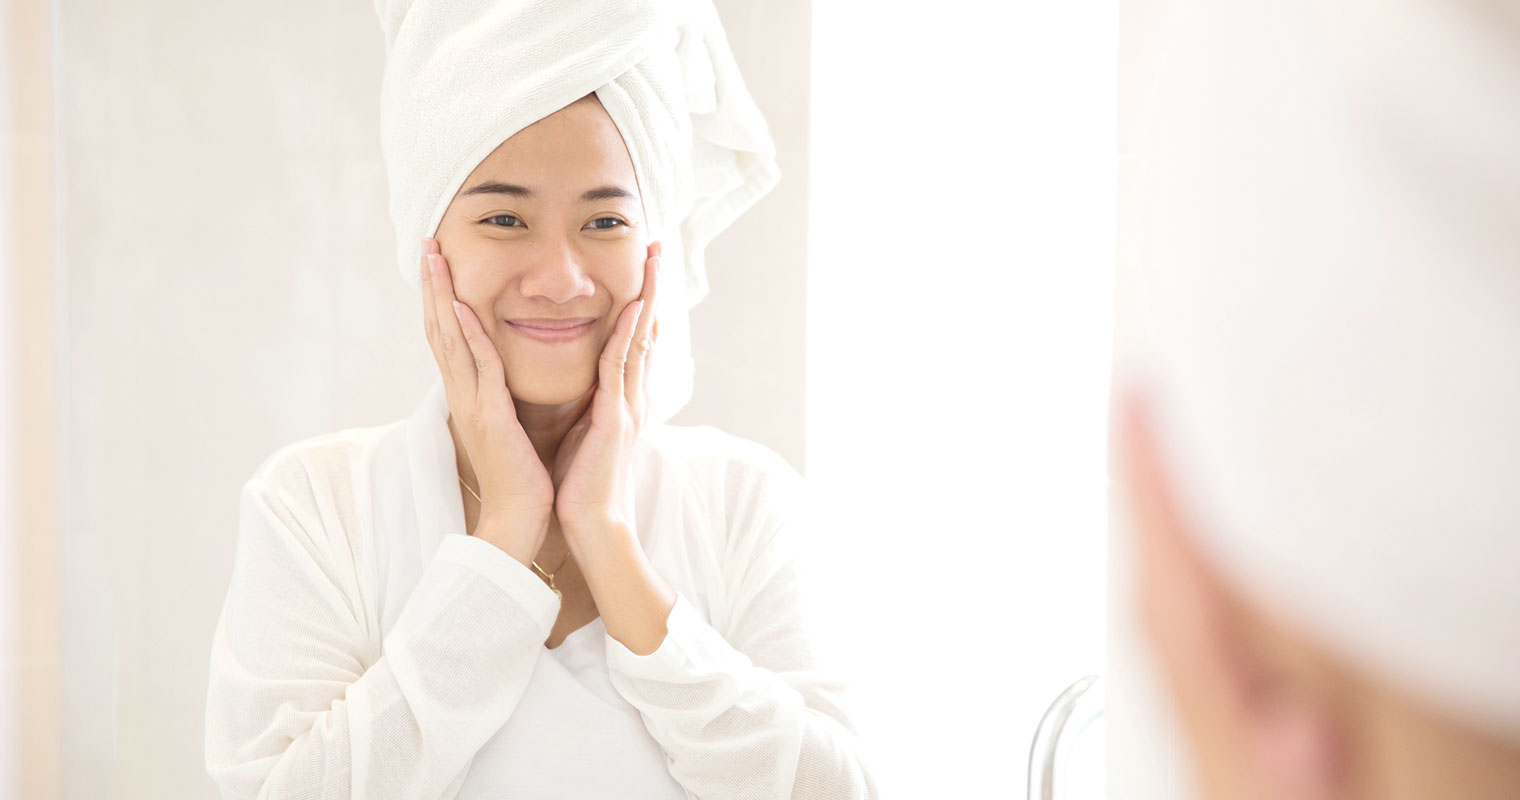 anti-aging concerns can be tackled